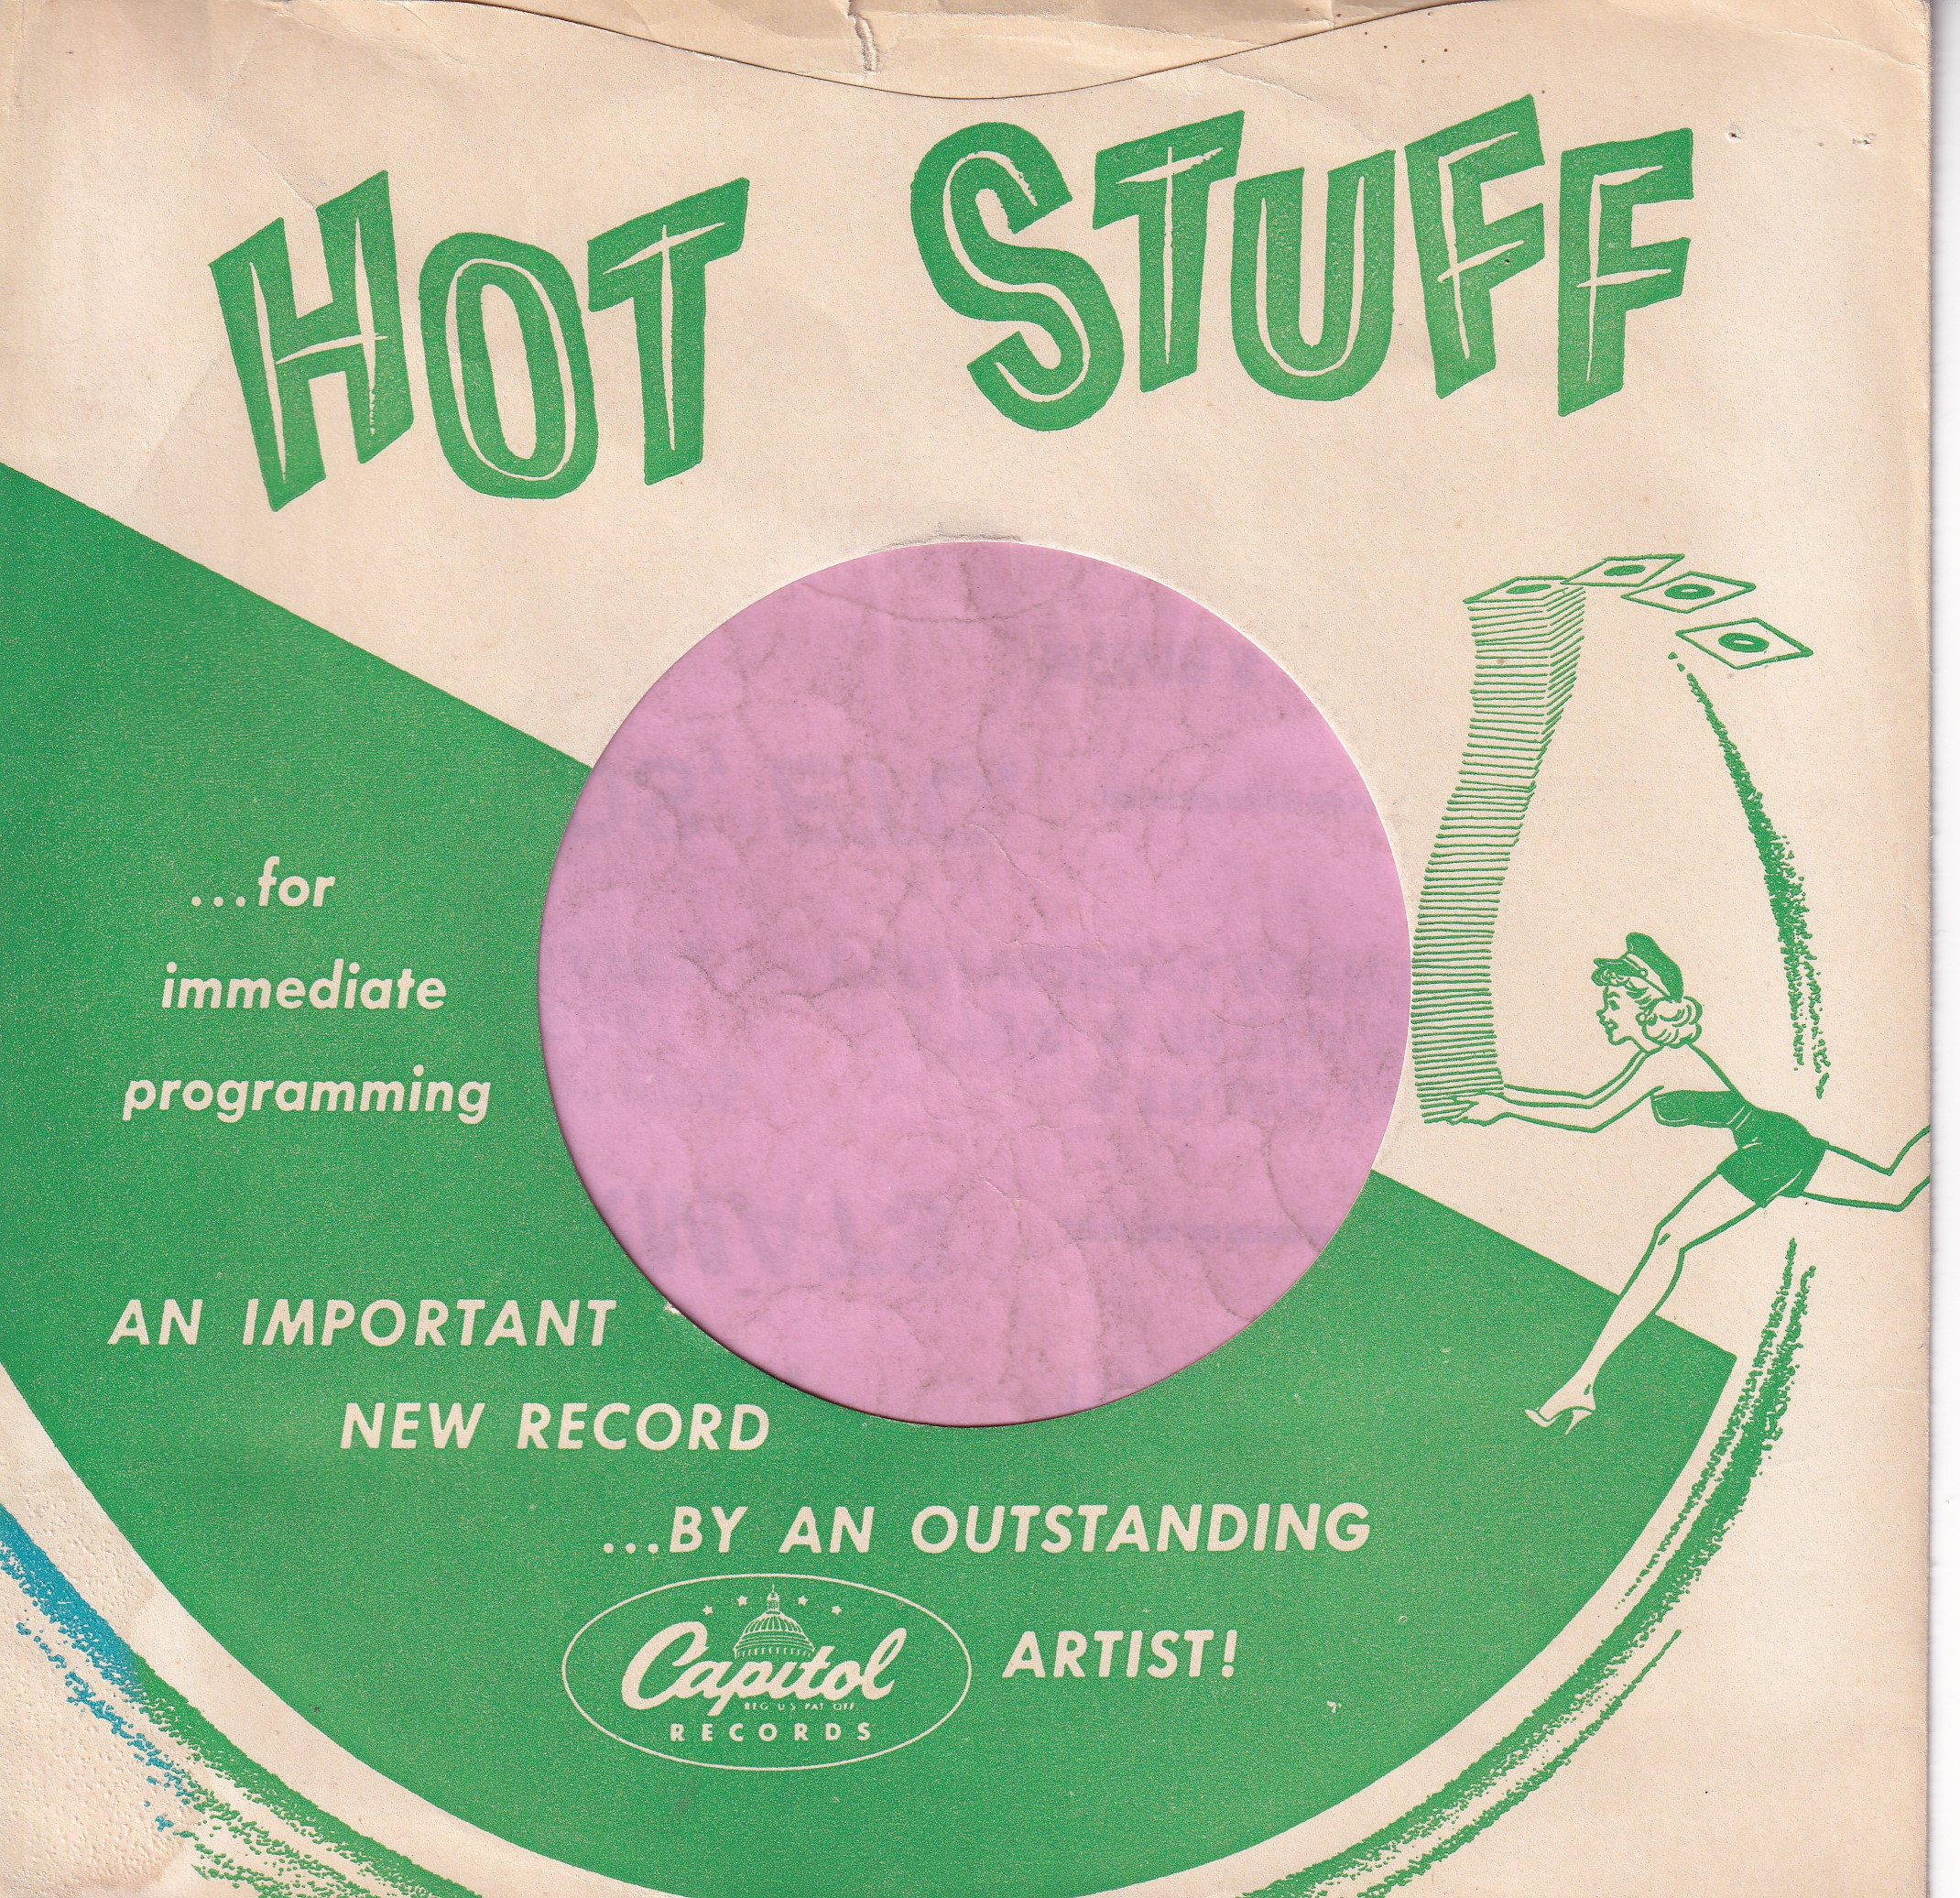 Have just uploaded some new Record Company Sleeves on the website today . All from Capitol Records from 1951 to 1981 .